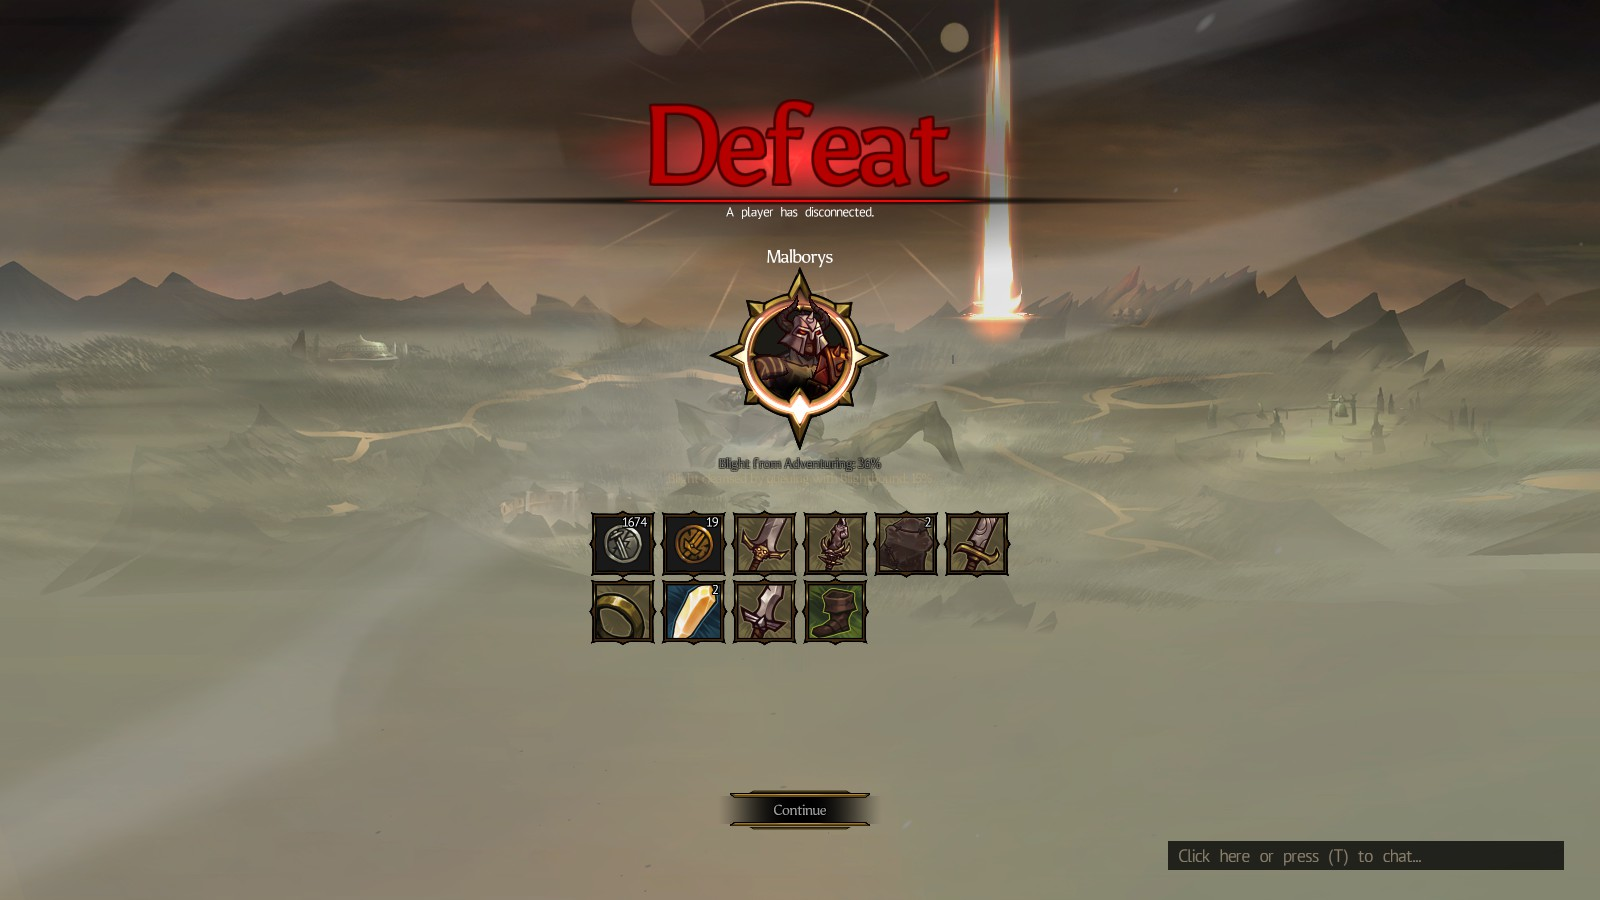 The Defeat screen shows a list of loot earned from the dungeon.